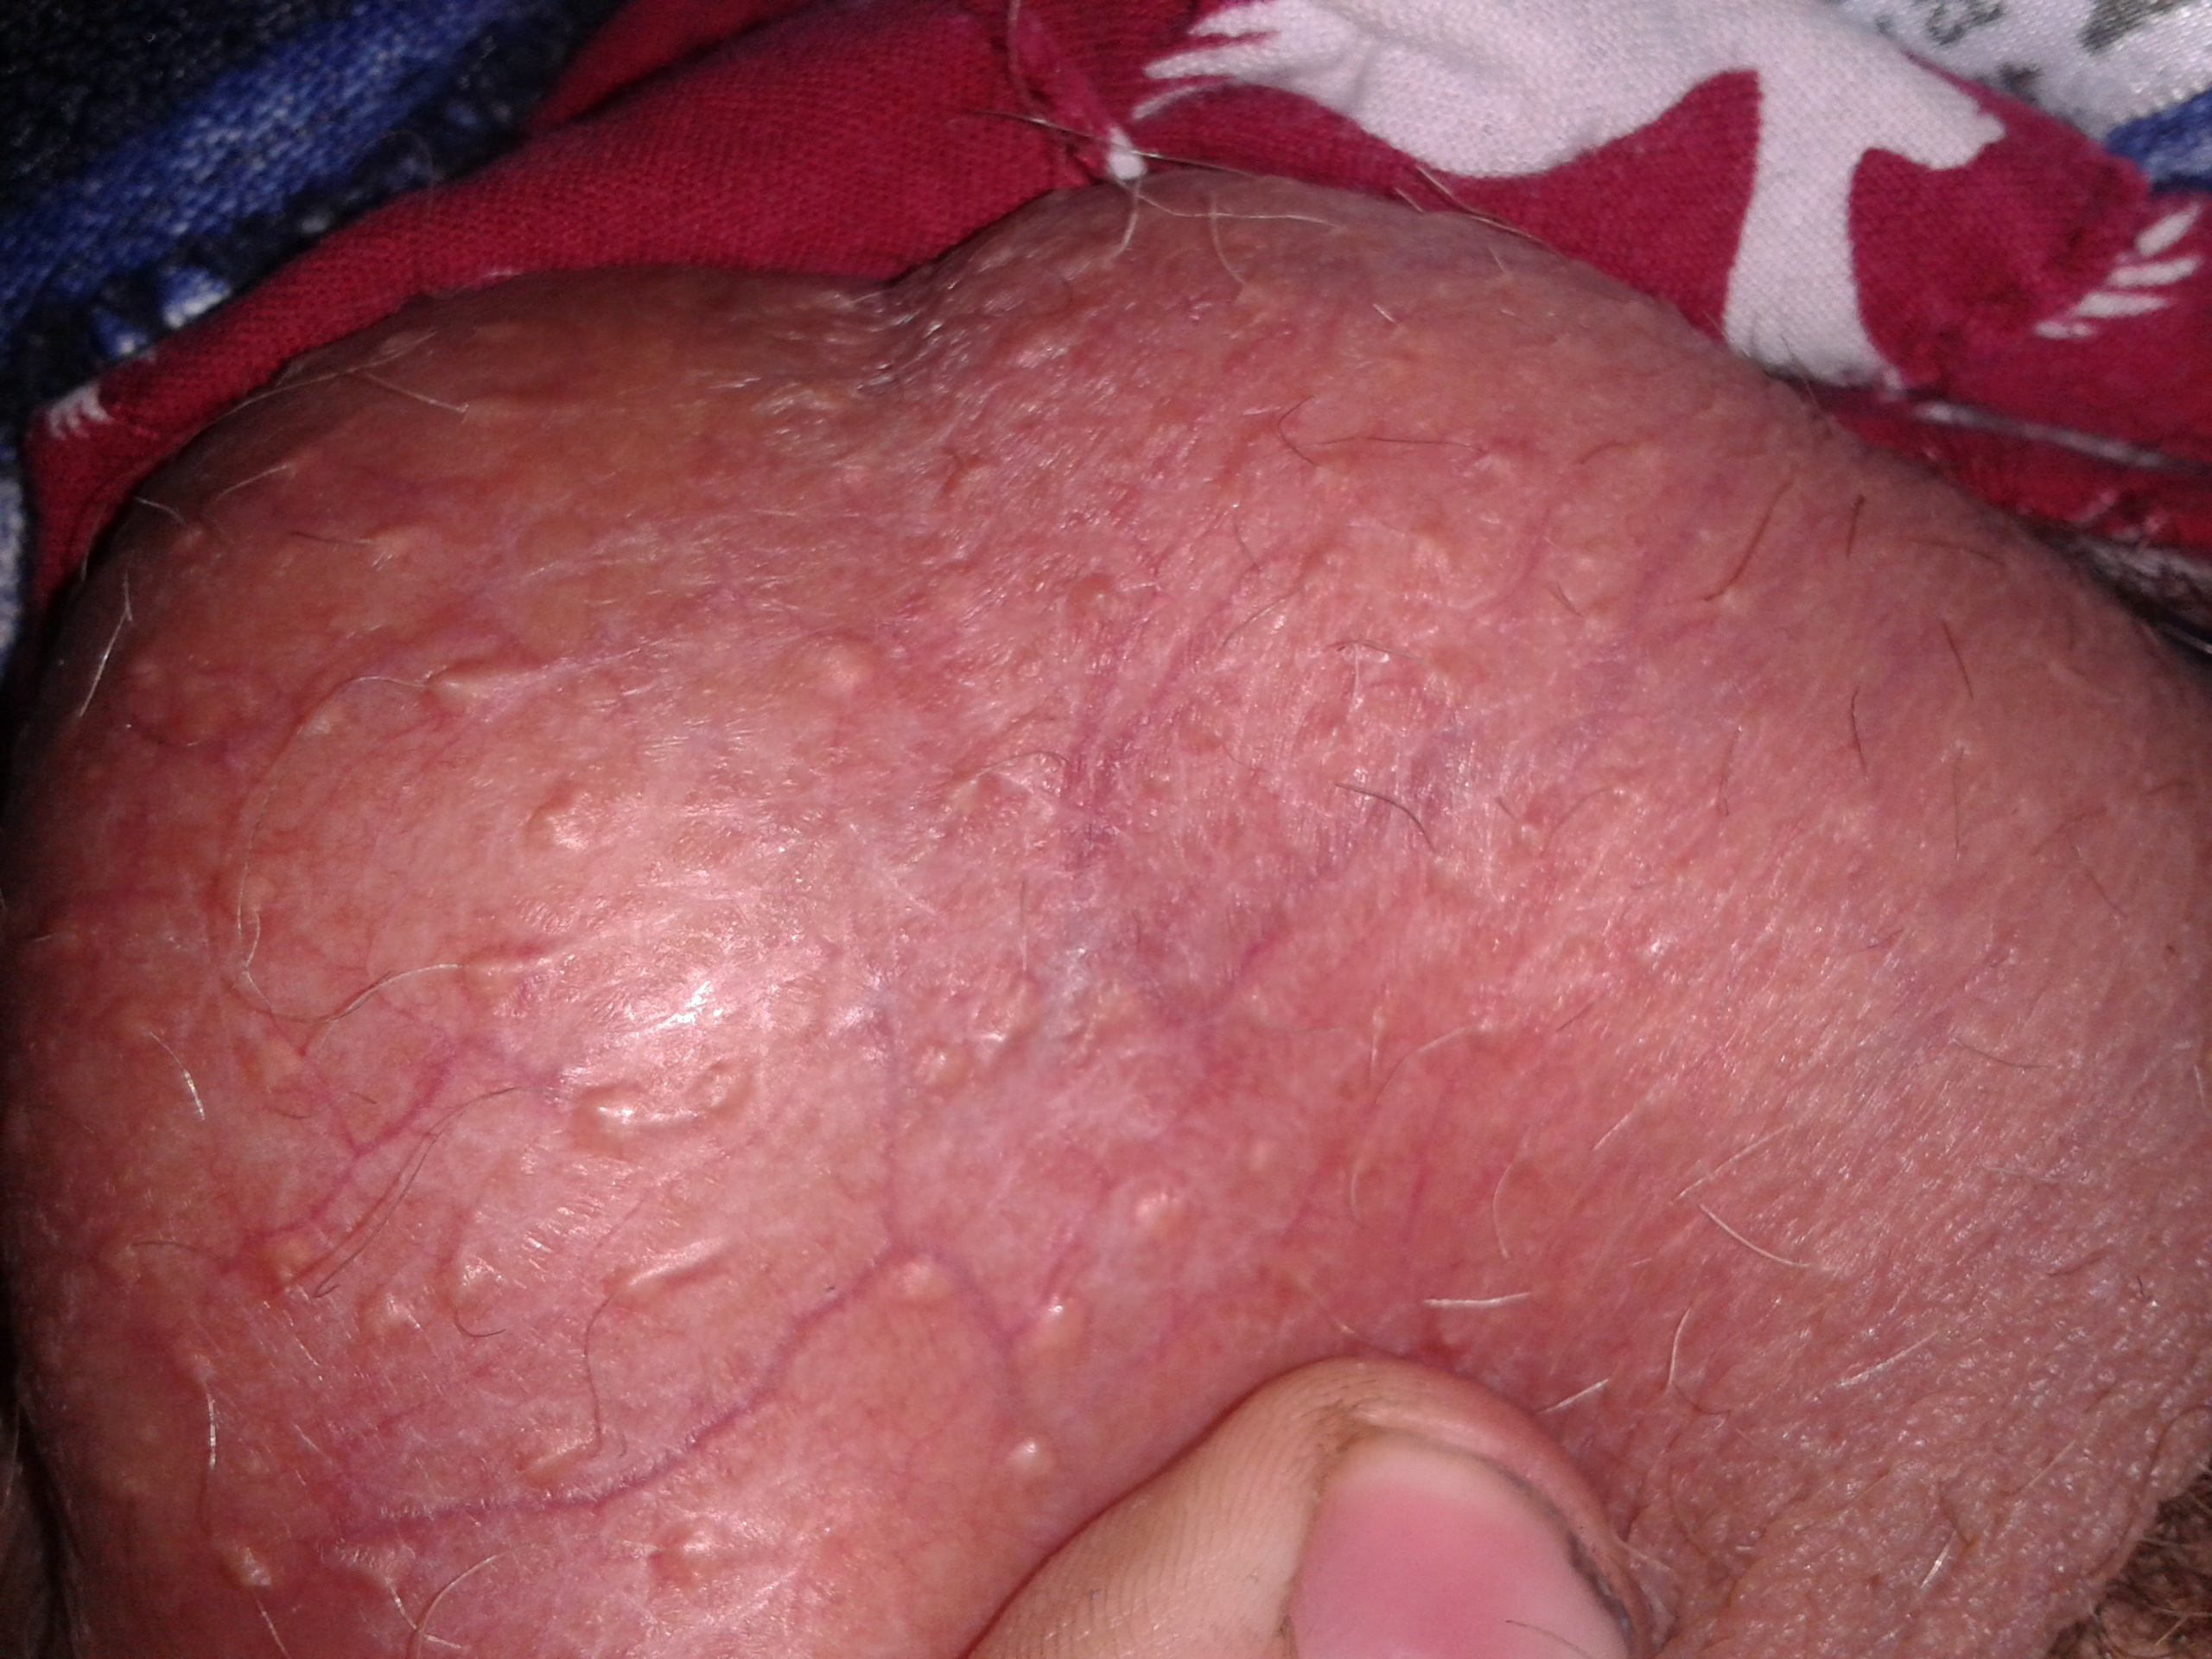 Bump on my penis